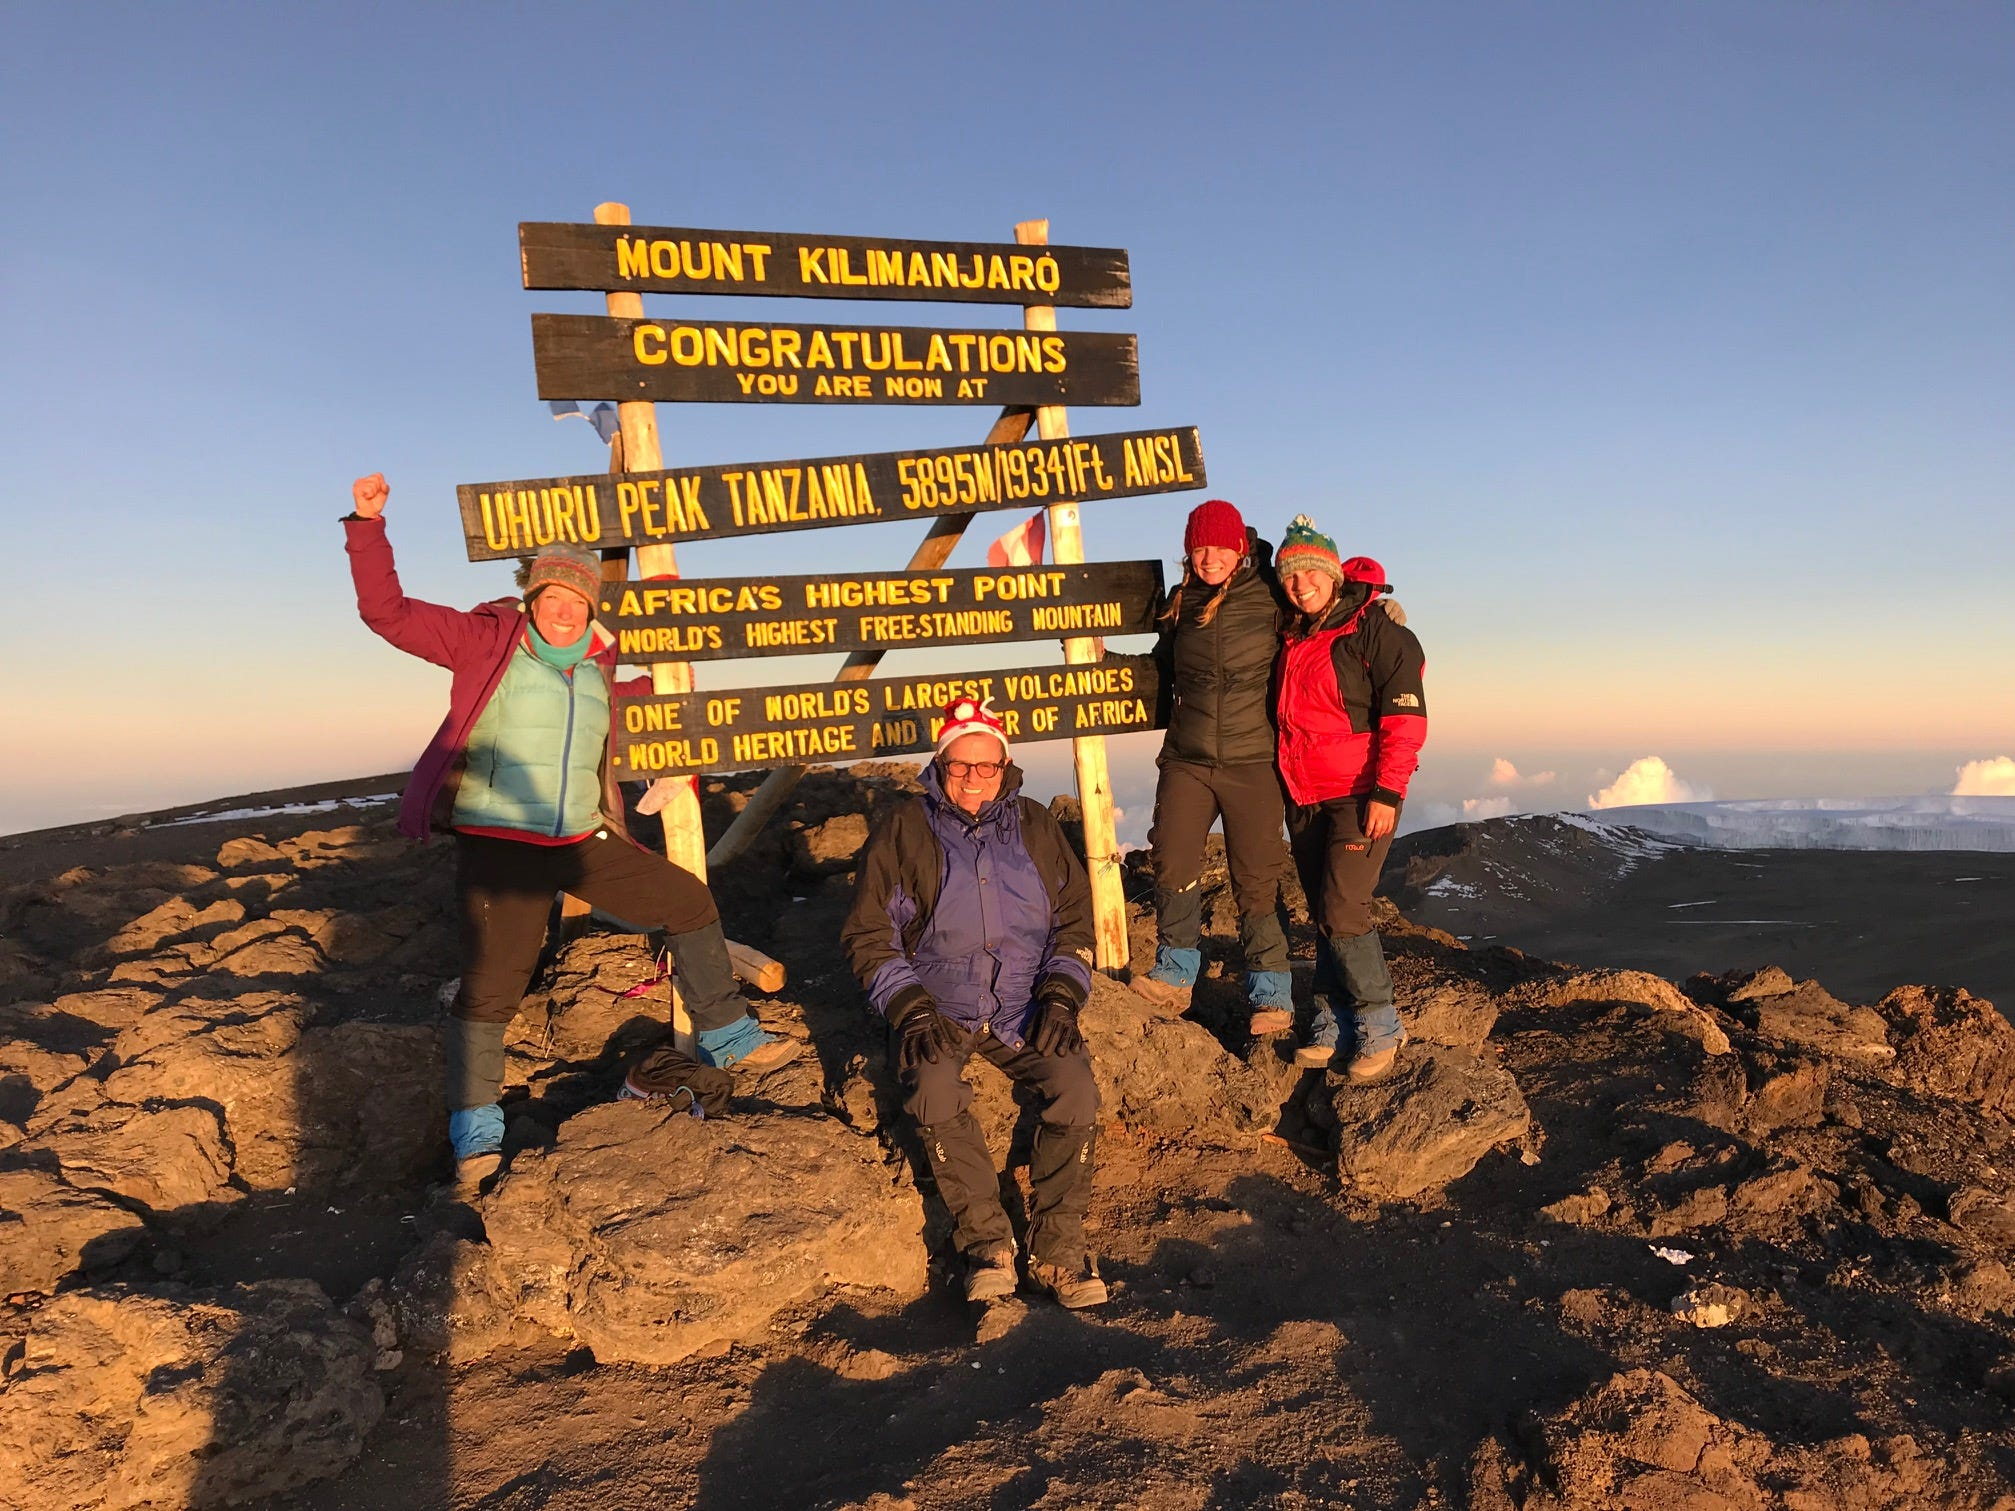 The summit of Mount Kilimanjaro, Tanzania. Kirby Adams, John Grantz, Jordan Grantz, Elliott Grantz